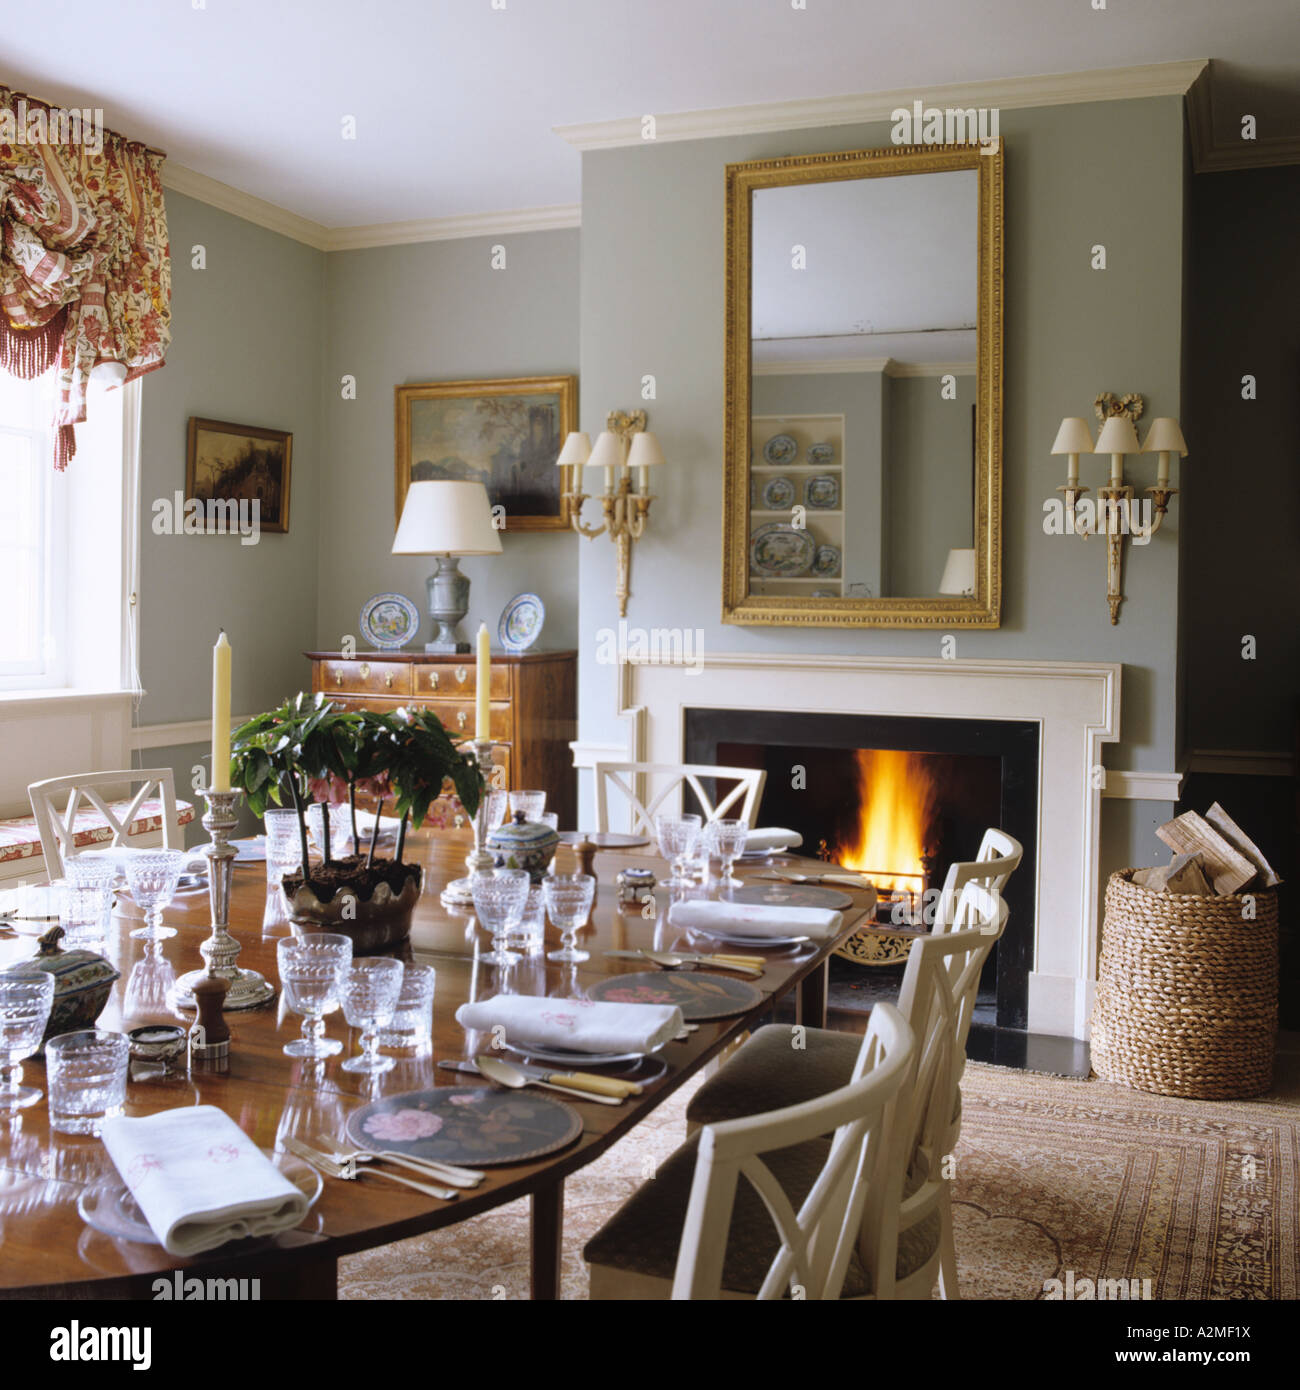 Dining Room With Laid Table And Lit Fire In English Country House